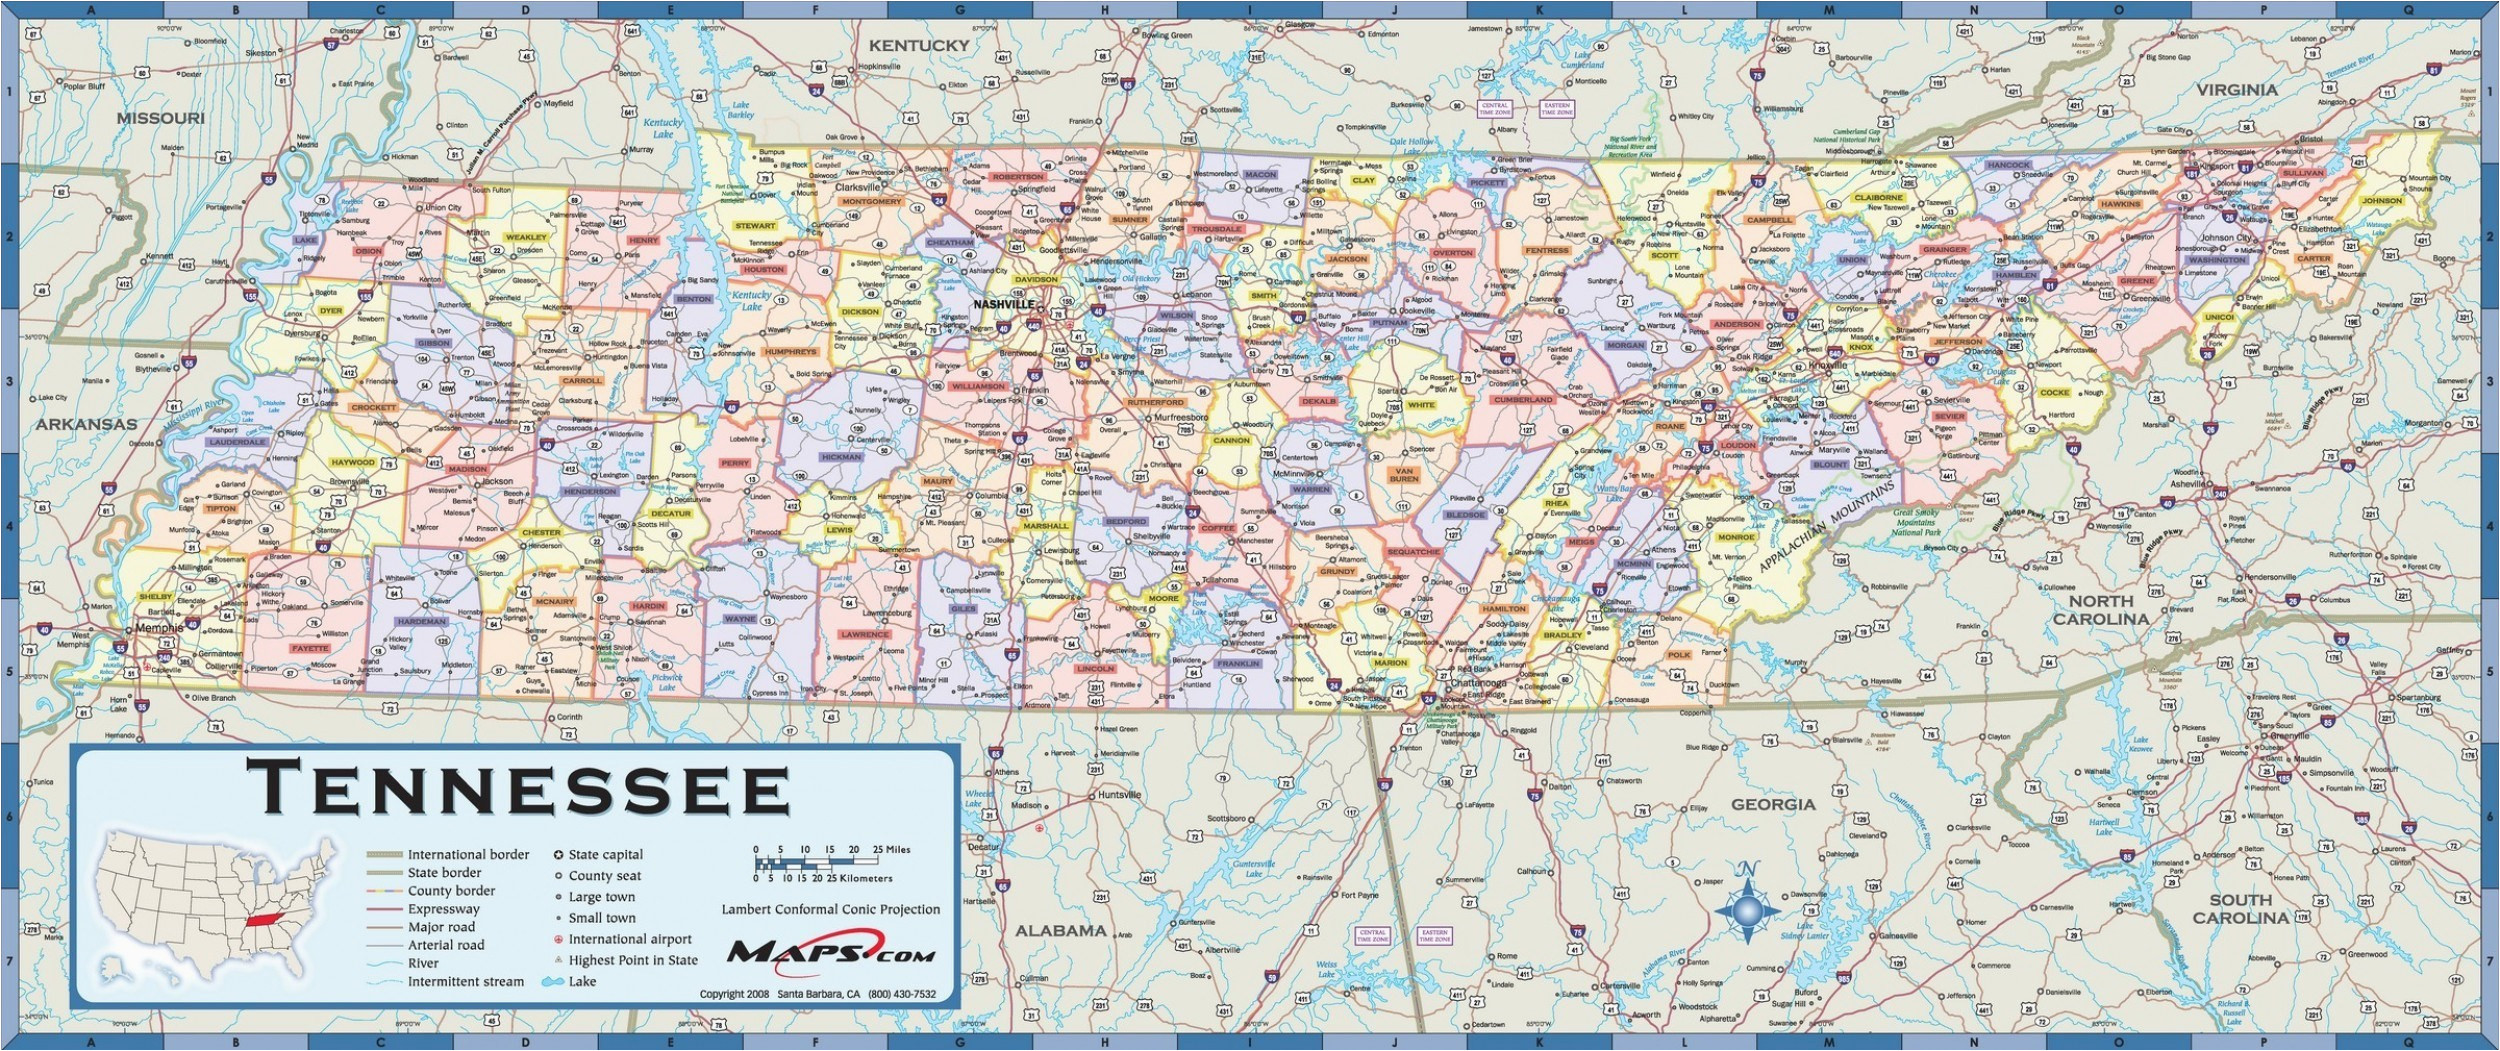 Tennessee Map with Cities and Counties | secretmuseum